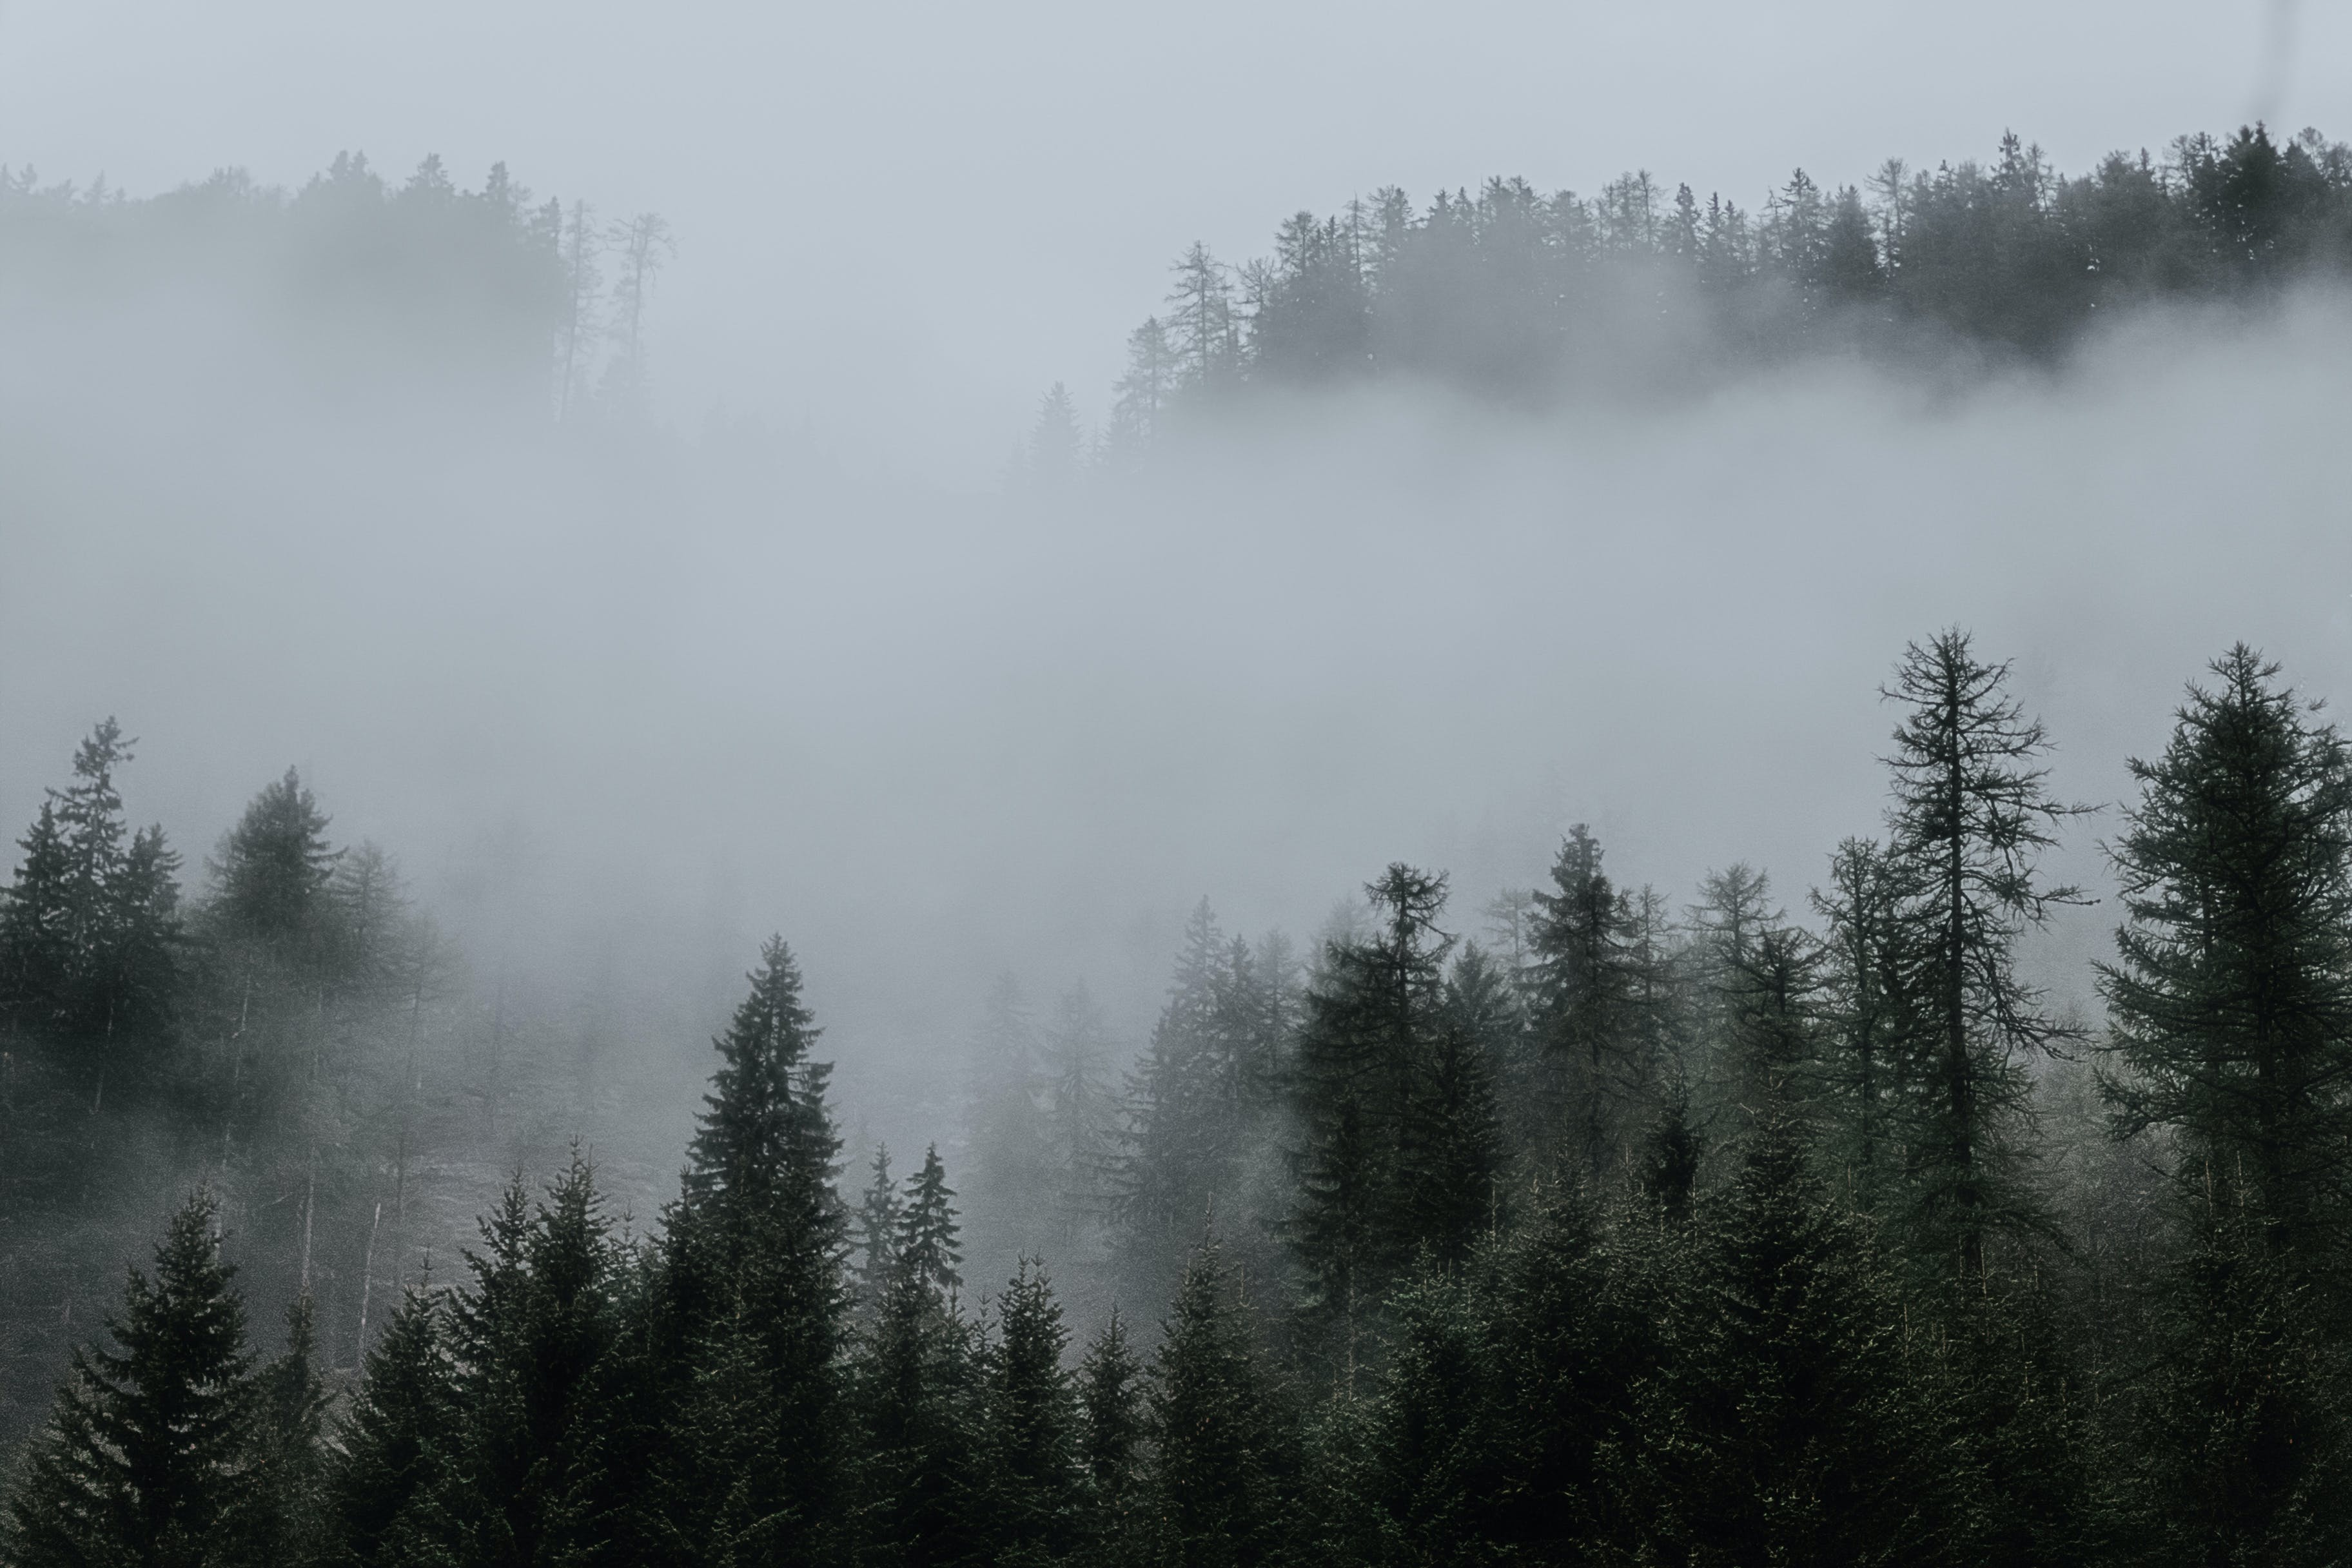 Trees Surrounded by Fogs in the Forest